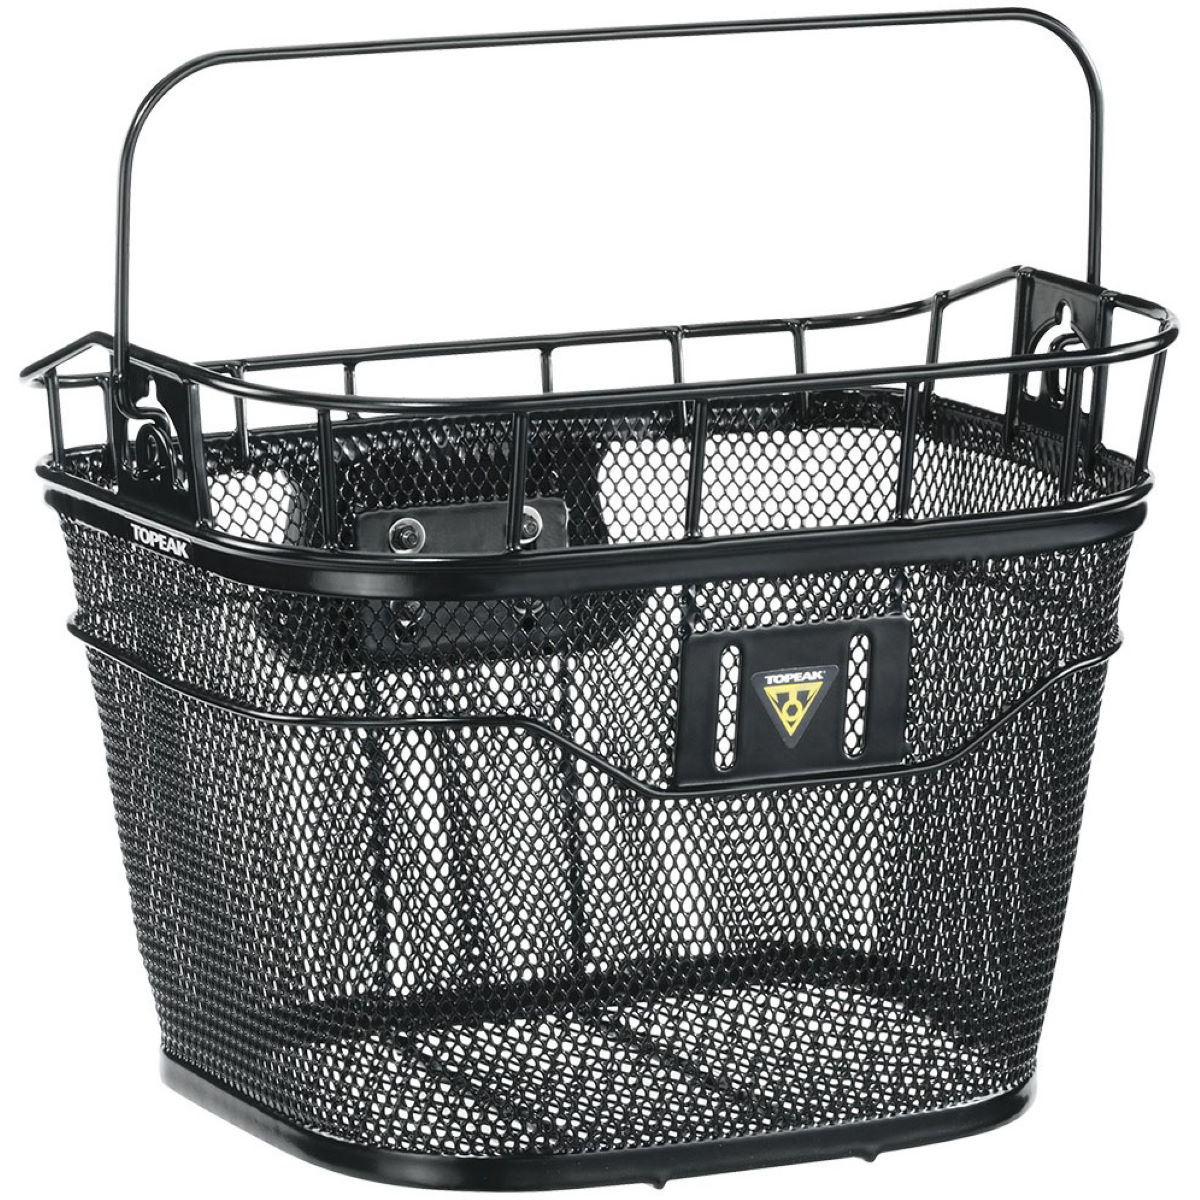 Topeak Topeak Basket - Front W/Fixer 3   Baskets